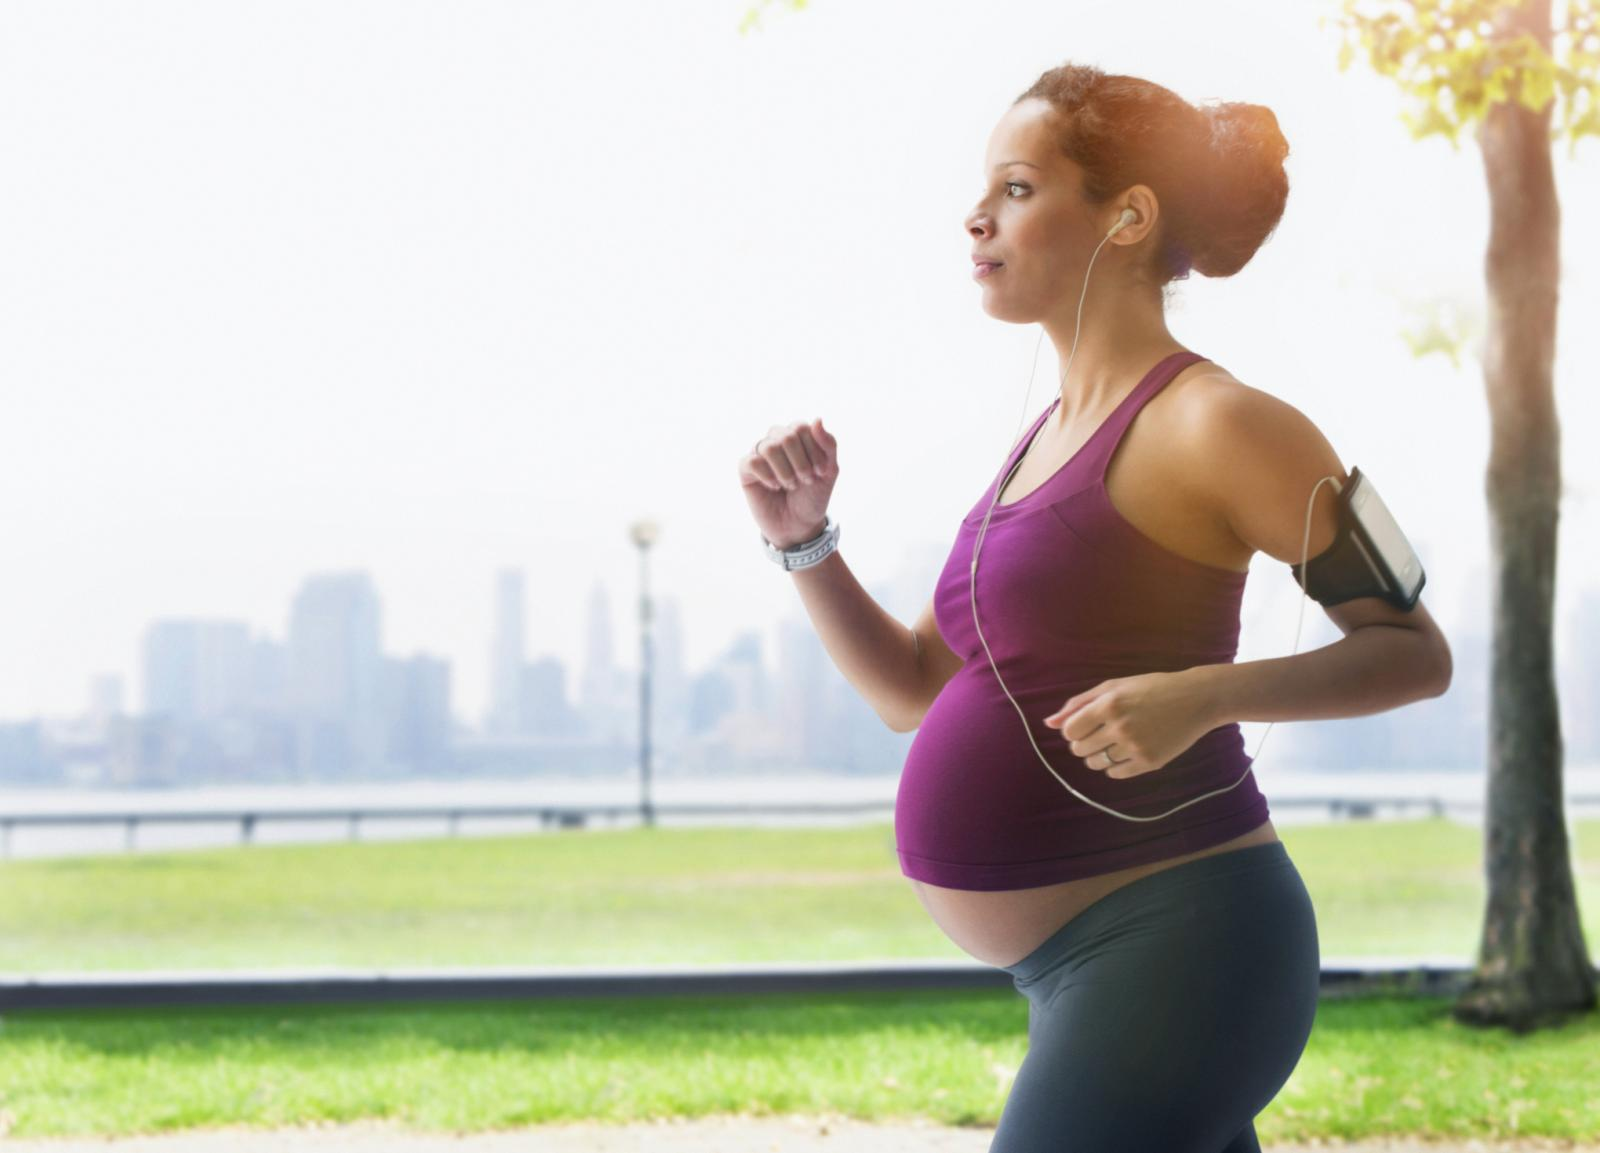 Pregnant woman power walking in park